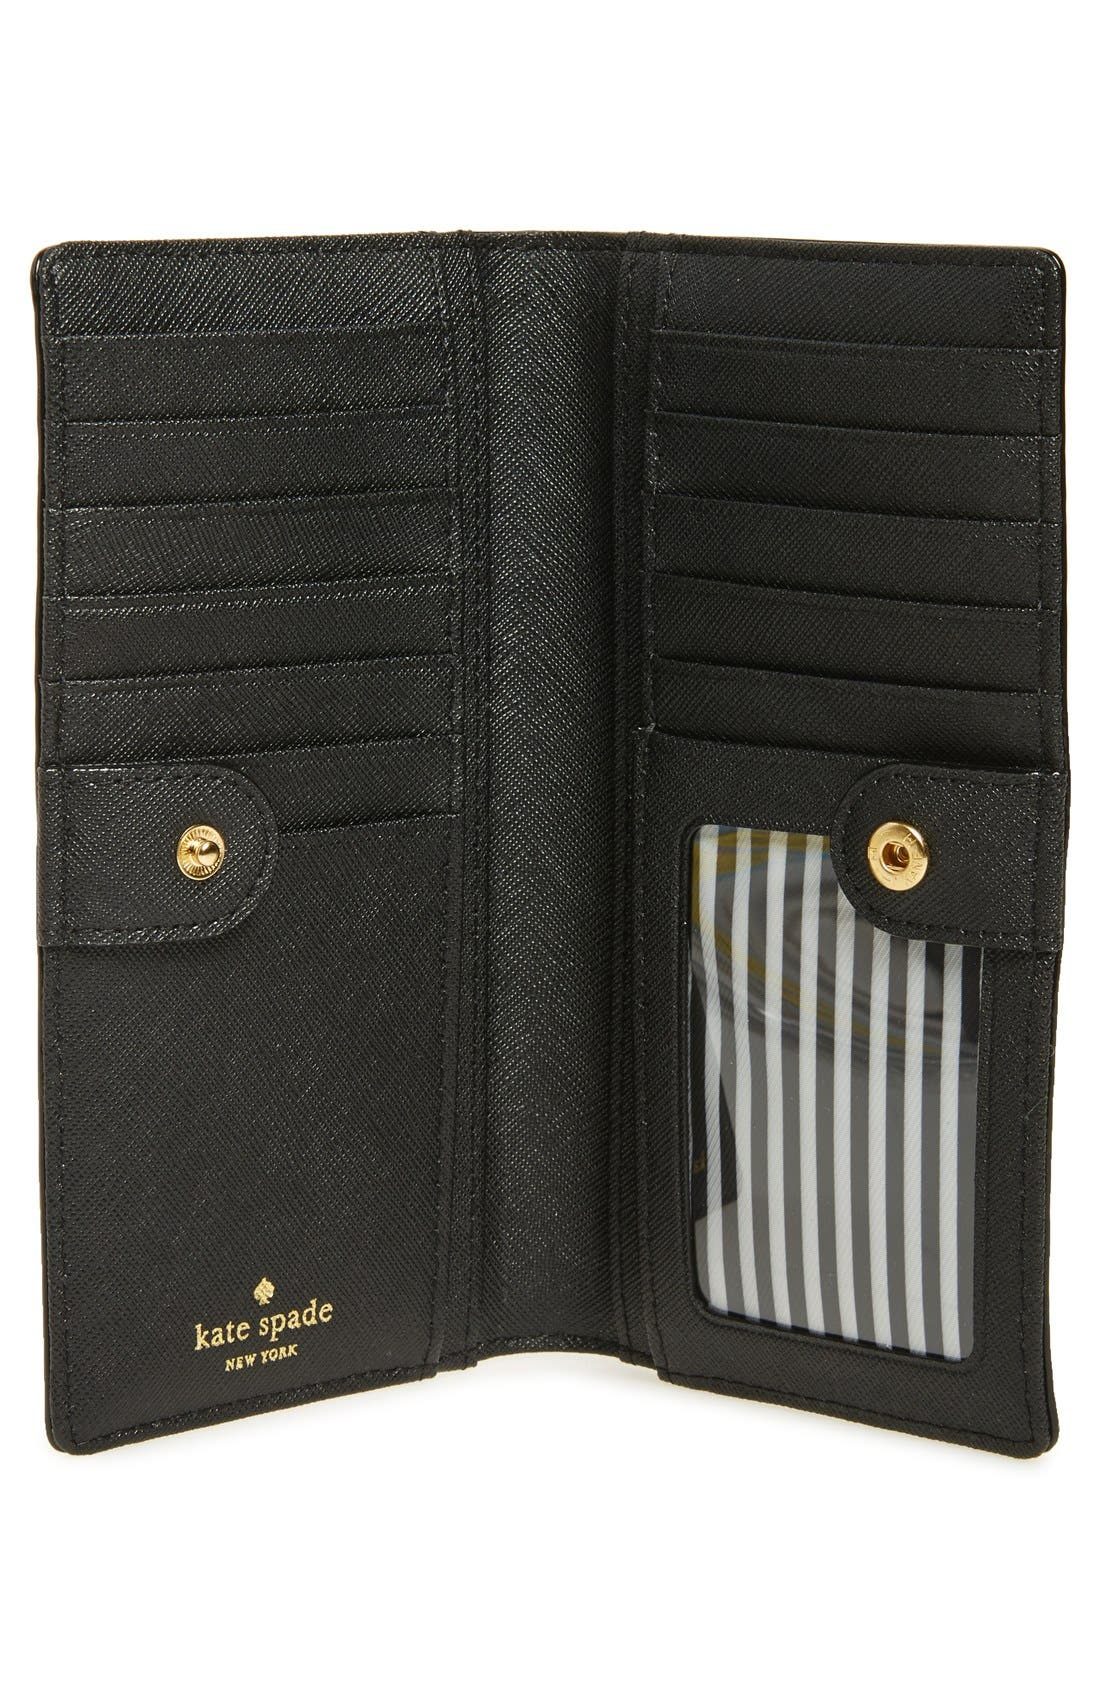 'cameron street - stacy' textured leather wallet,                             Alternate thumbnail 2, color,                             Black